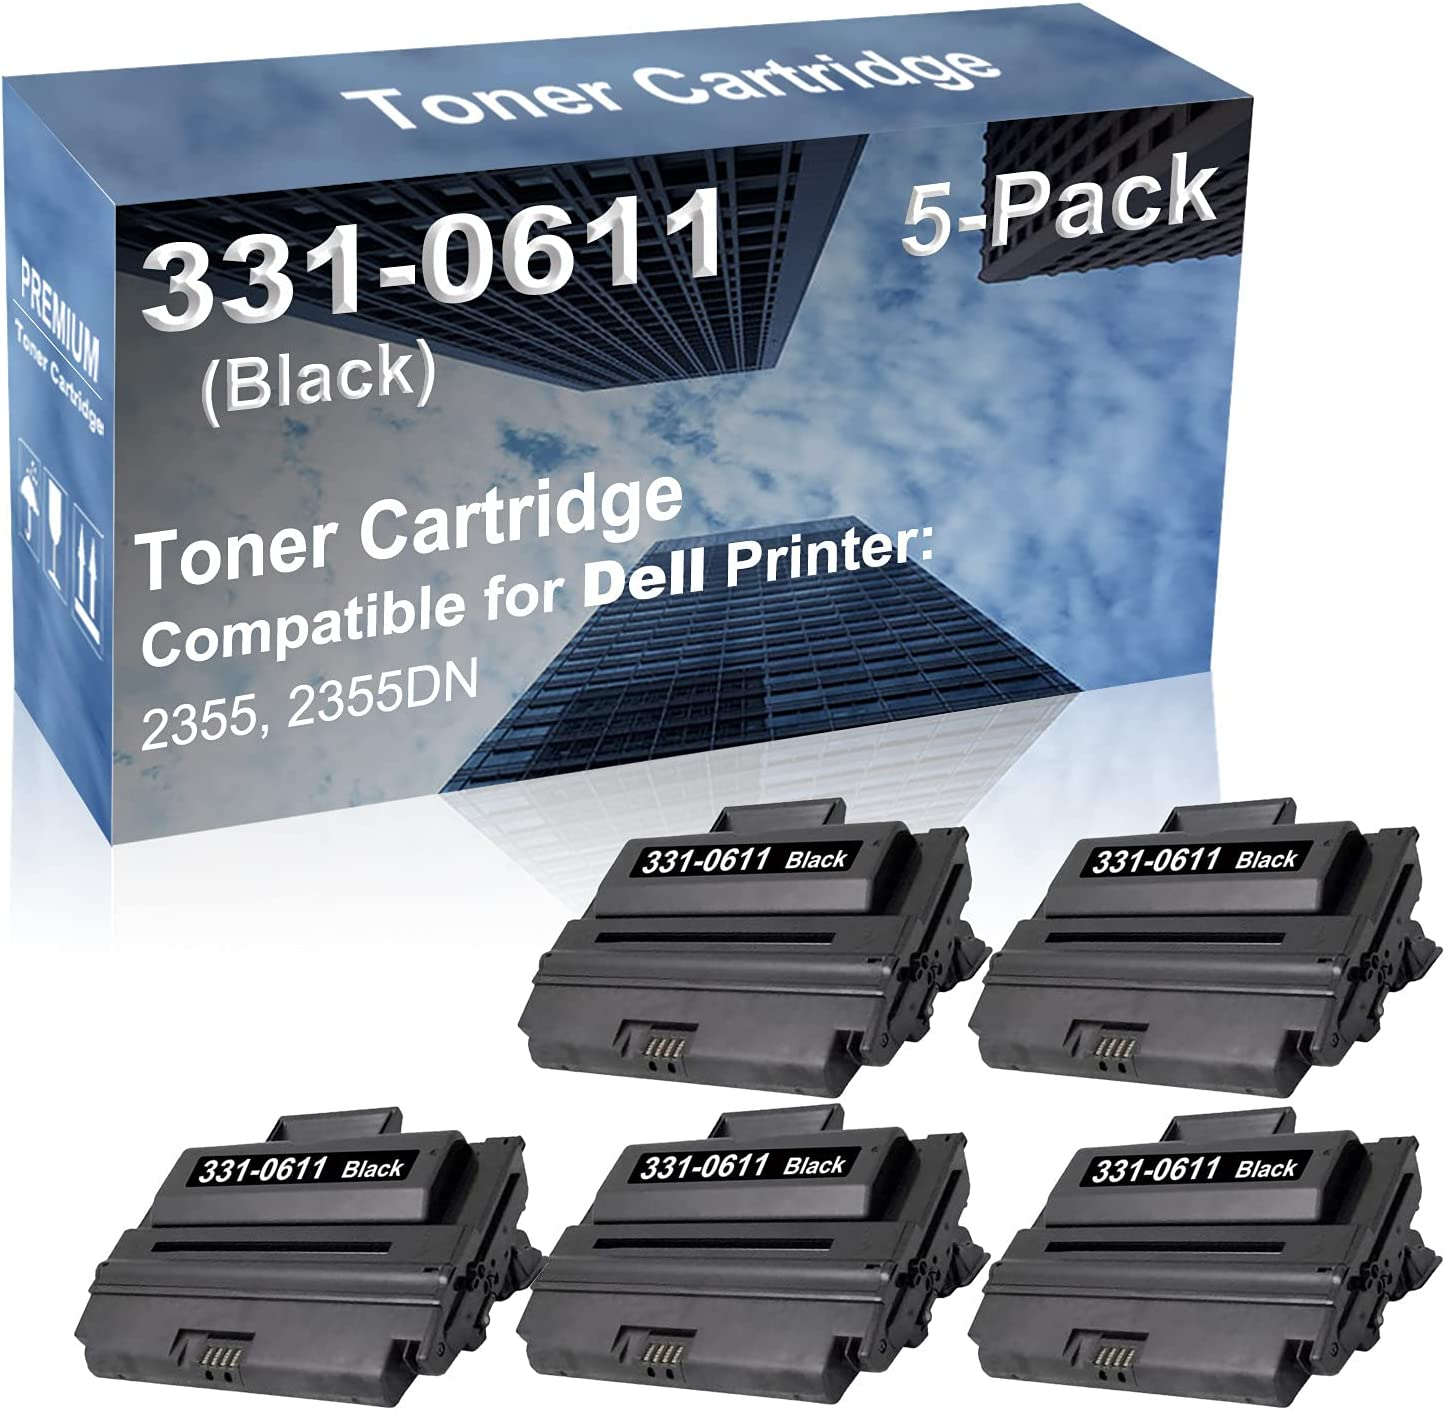 5-Pack Compatible High Yield 2355, 2355DN Printer Cartridge Replacement for Dell 331-0611 Toner Cartridge (Black)